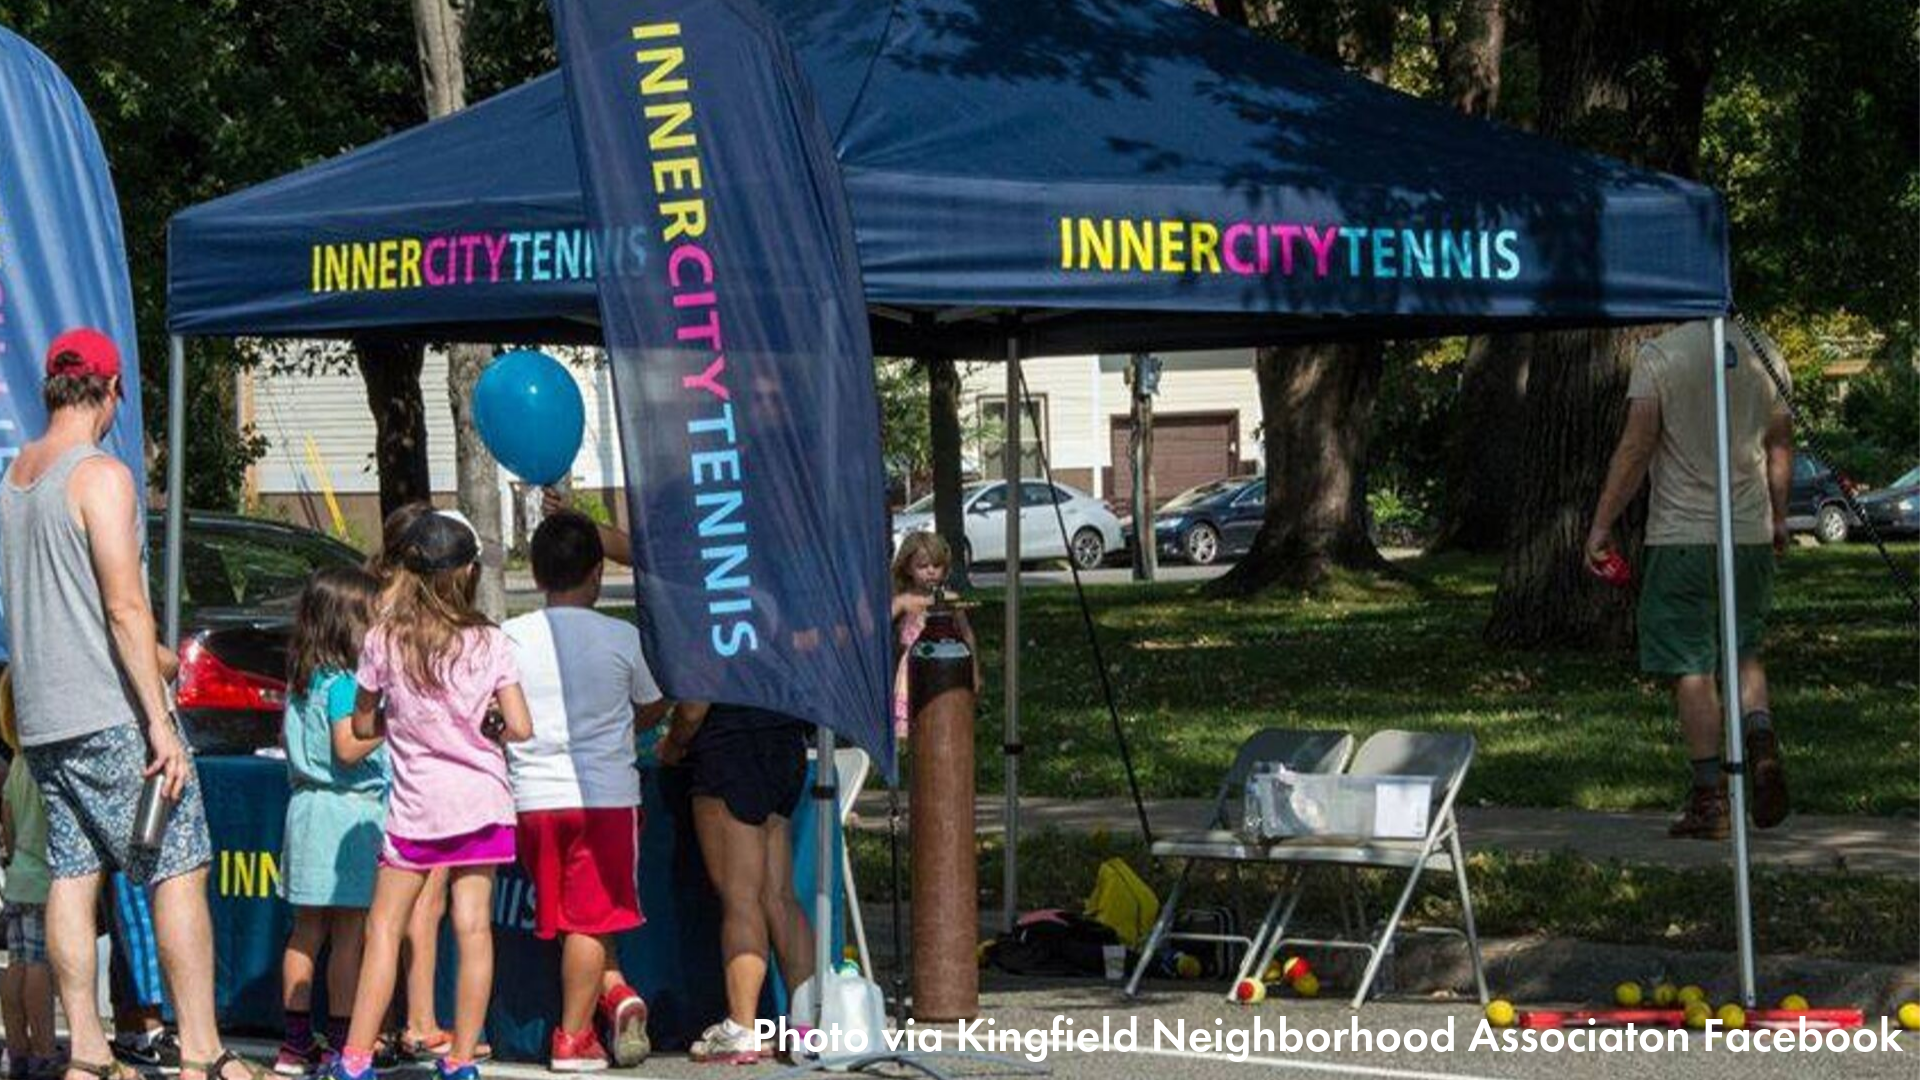 InnerCity Tennis Tent at Open Streets Nicollet